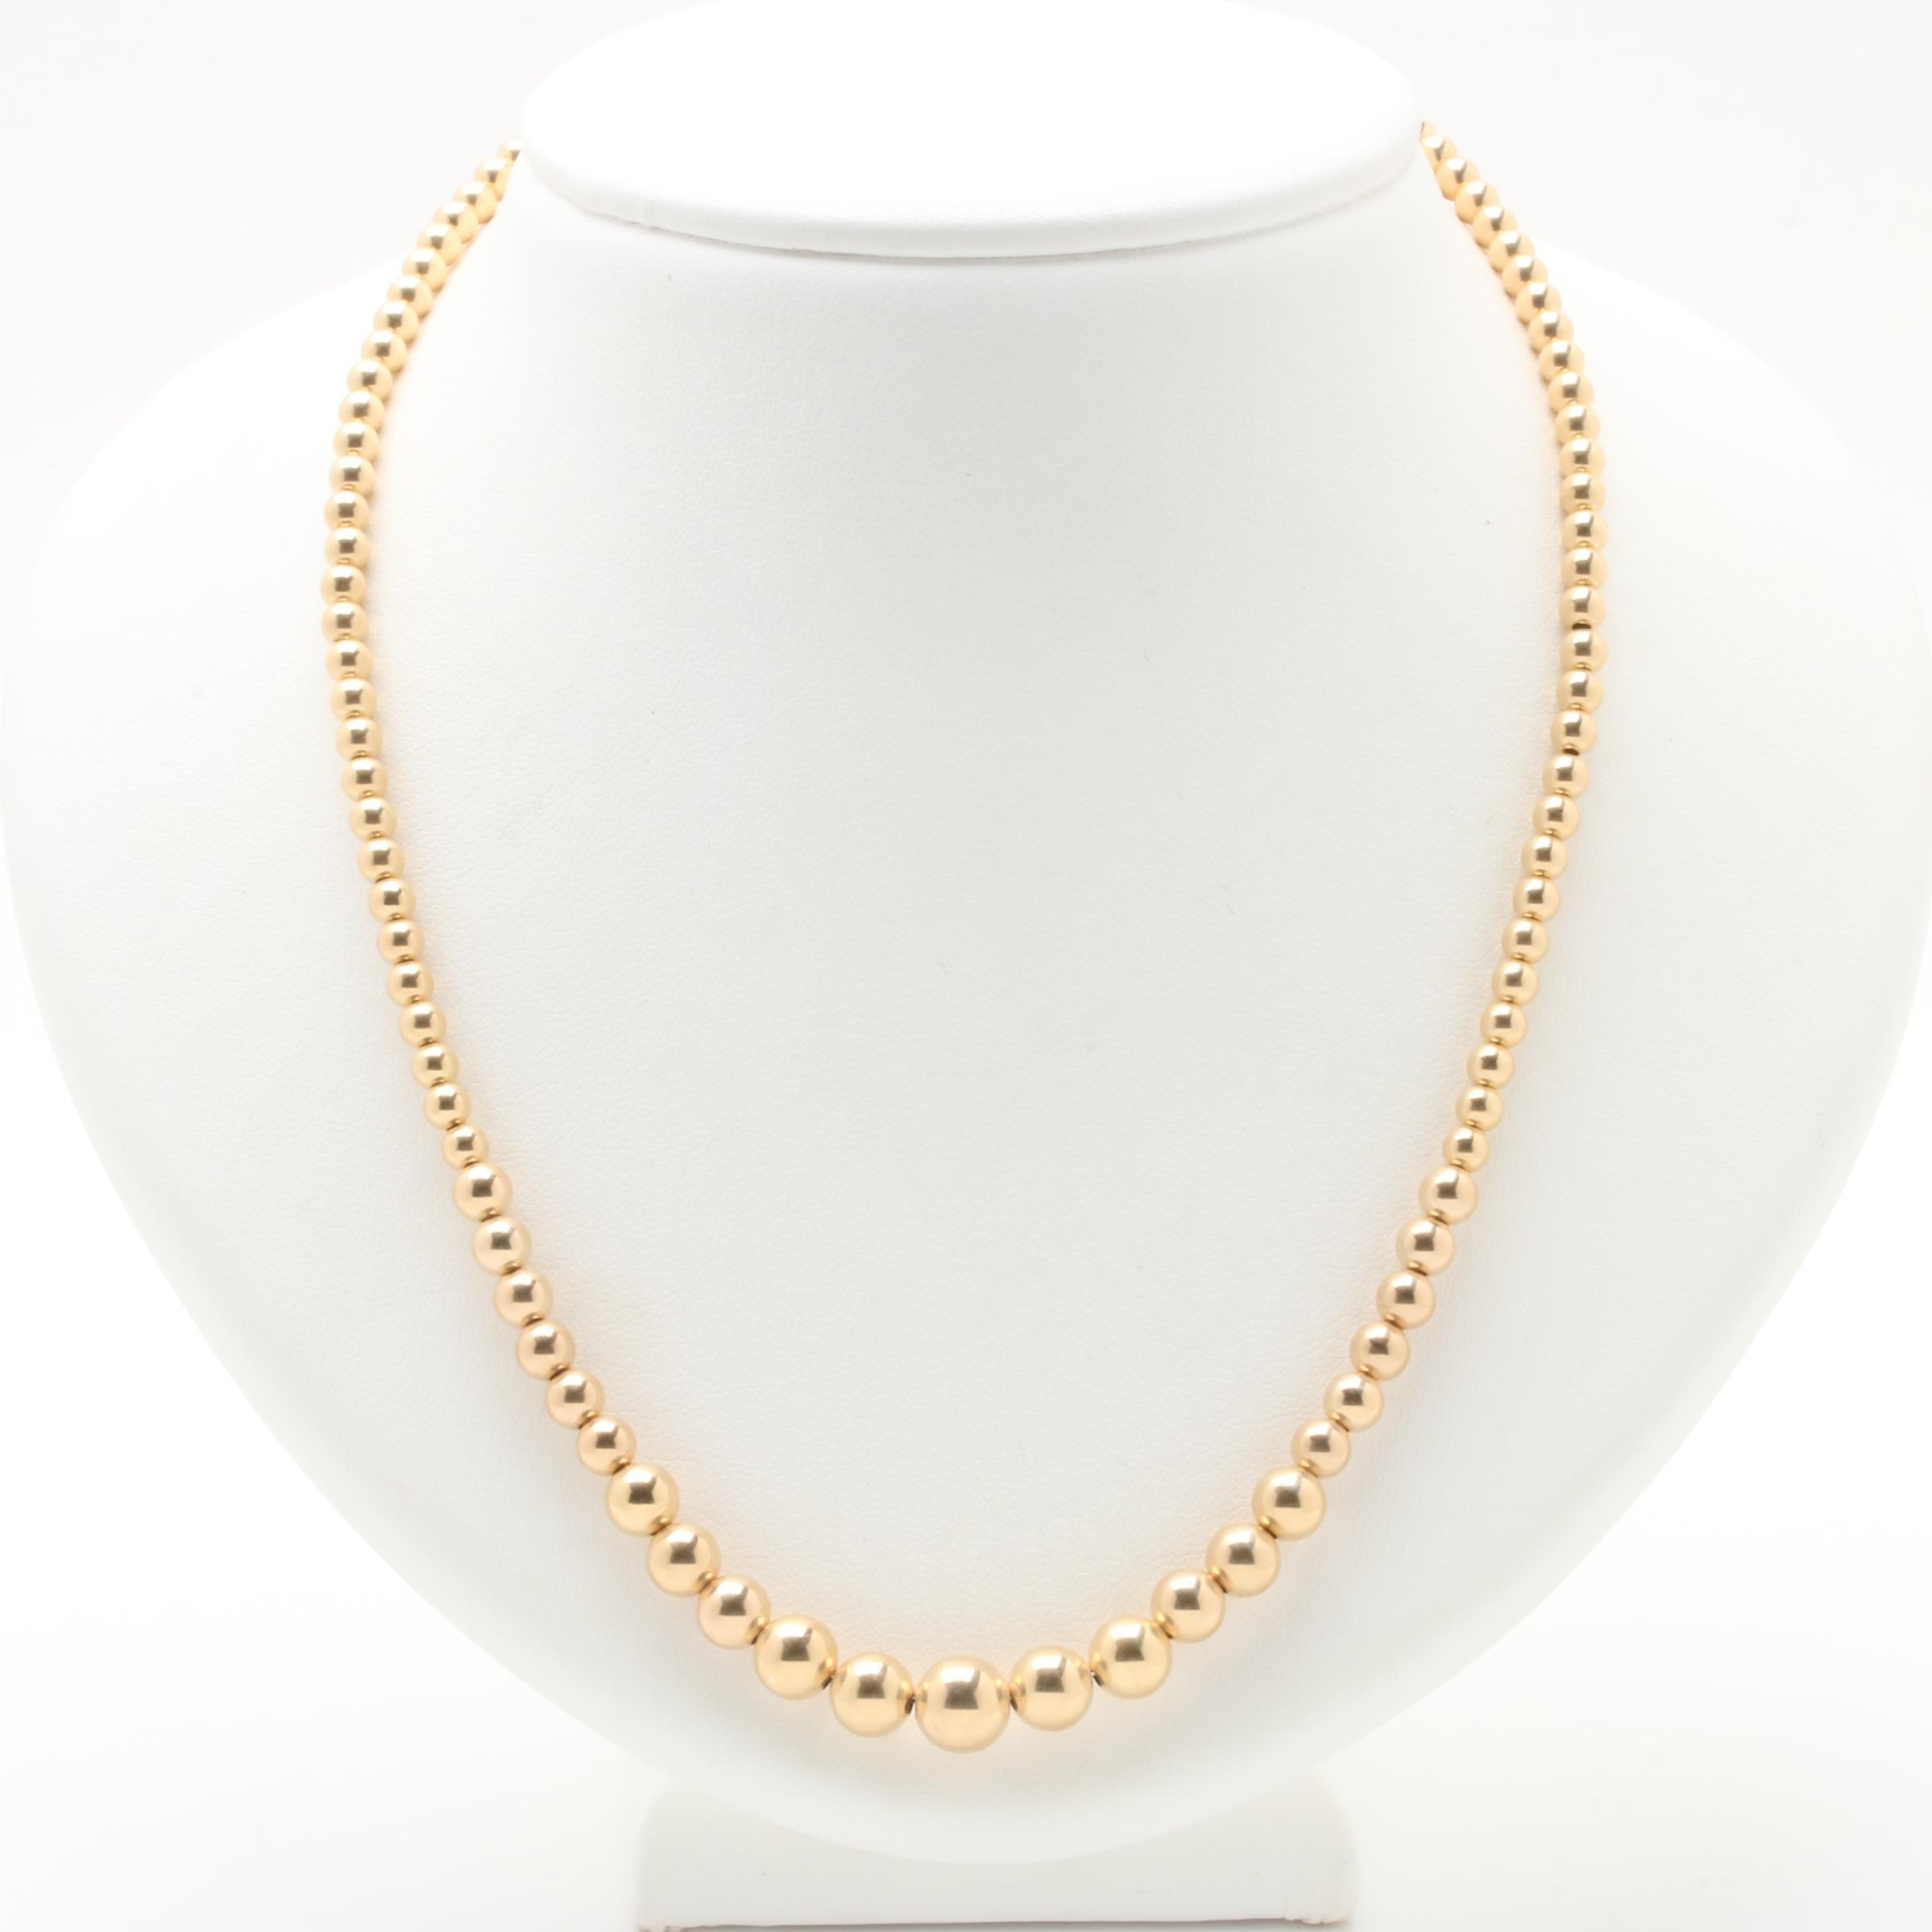 14K Yellow Gold Graduated Bead Necklace